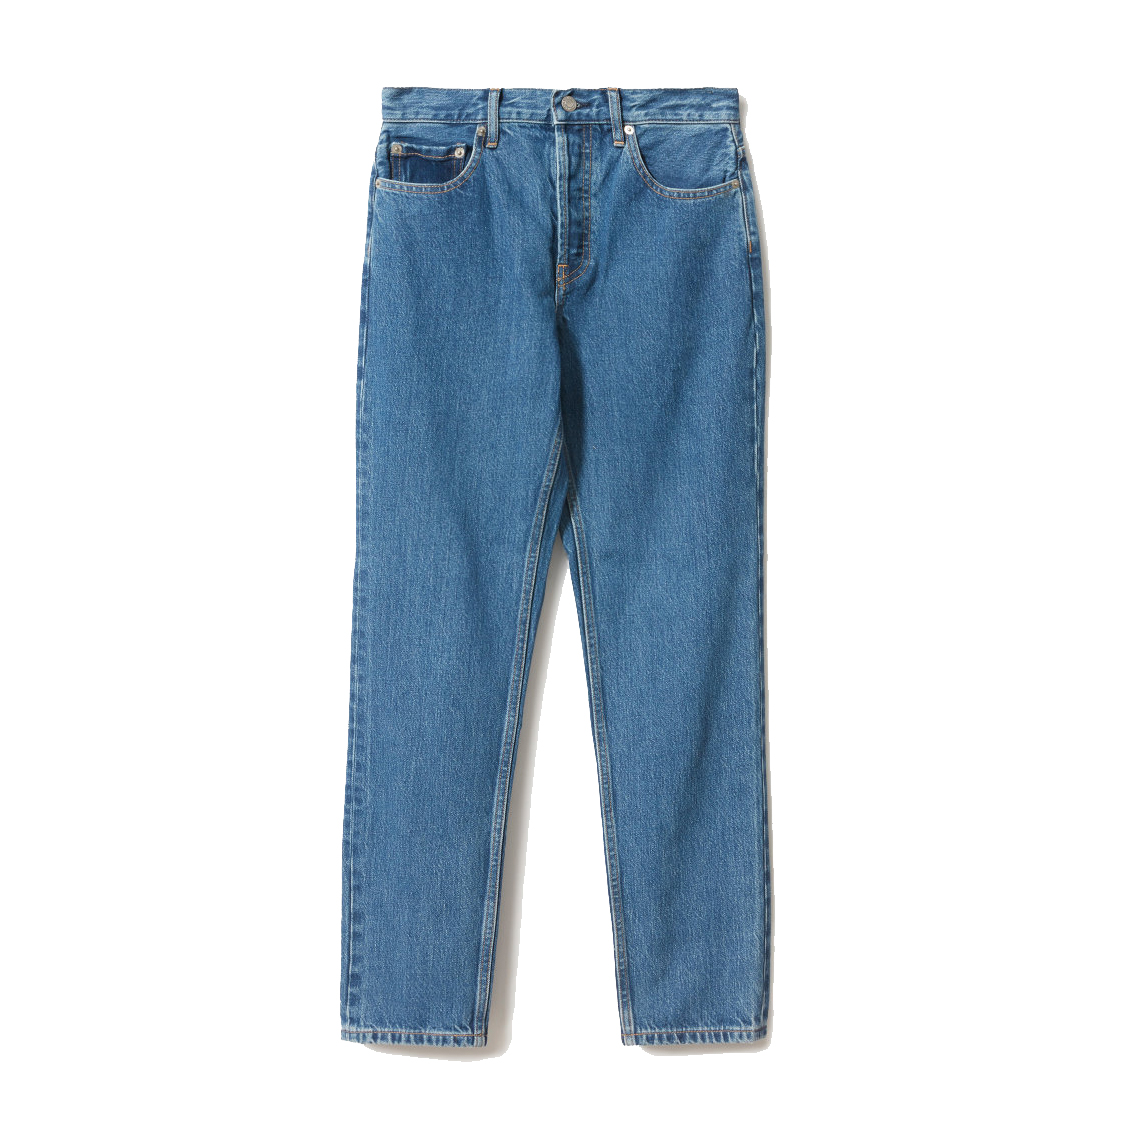 Everlane The 90s Cheeky Straight Jean Blue